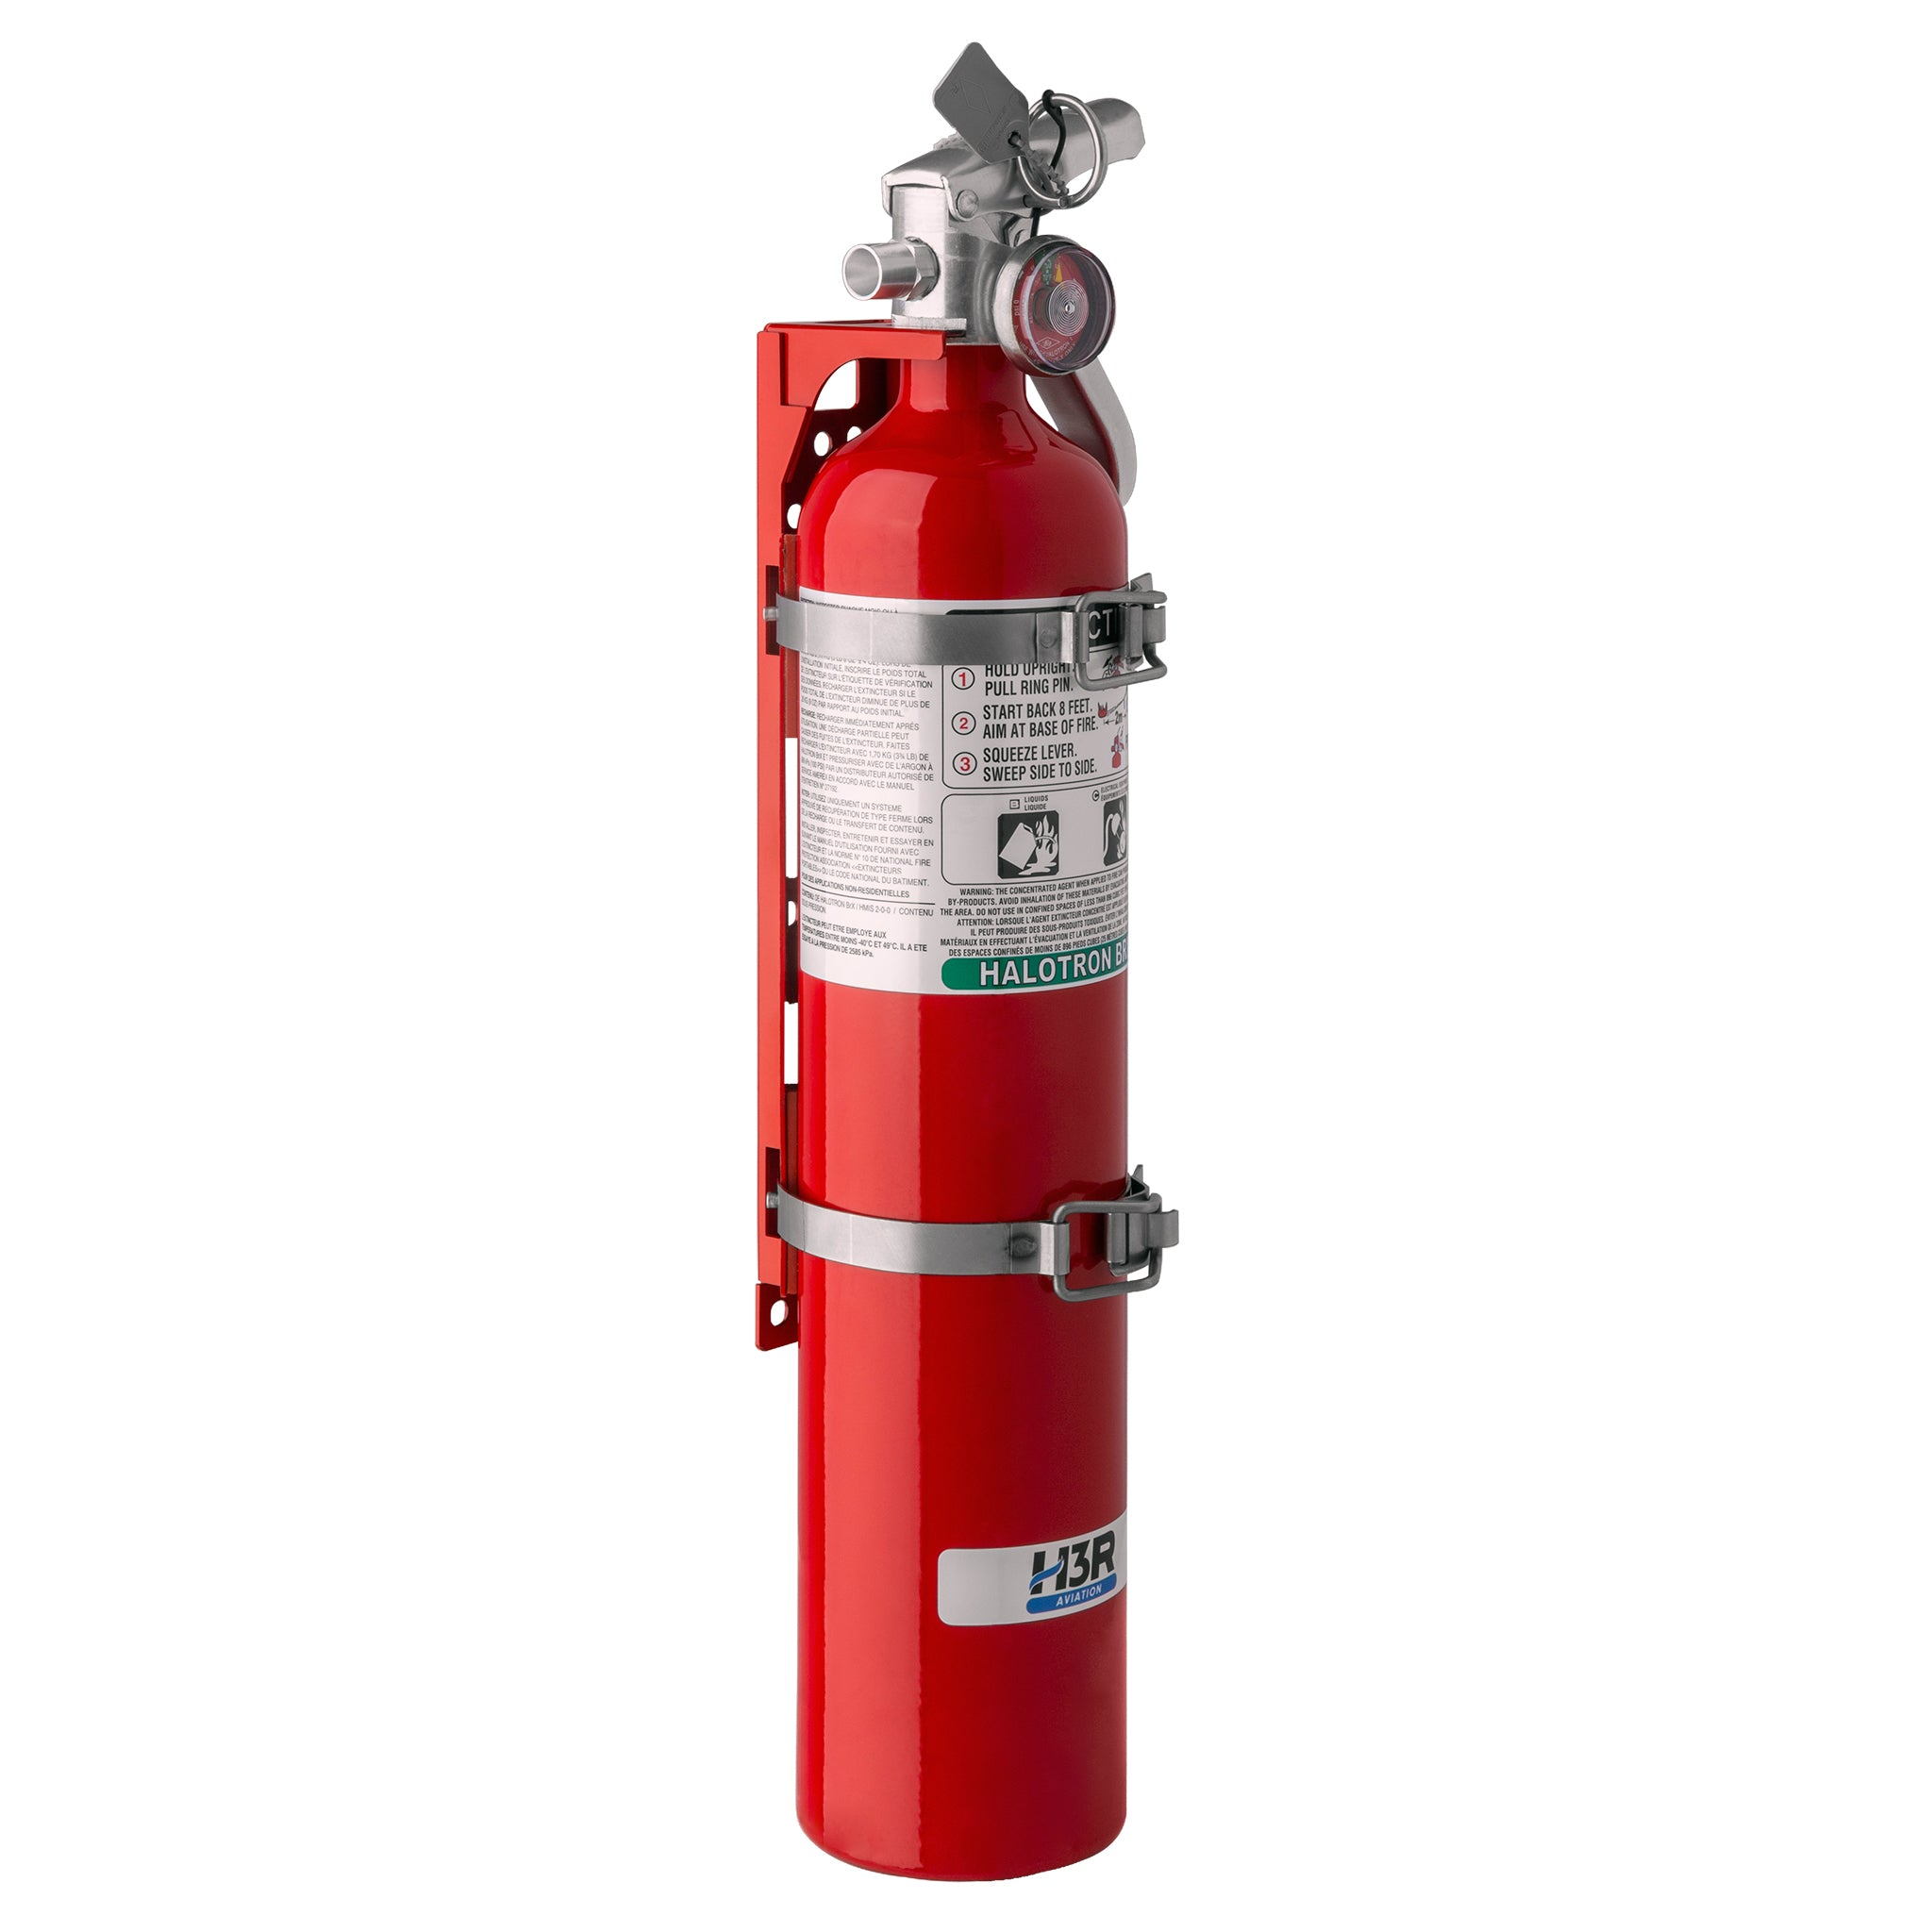 MODEL 347 – 3.75 lb. Halotron BrX Fire Extinguisher